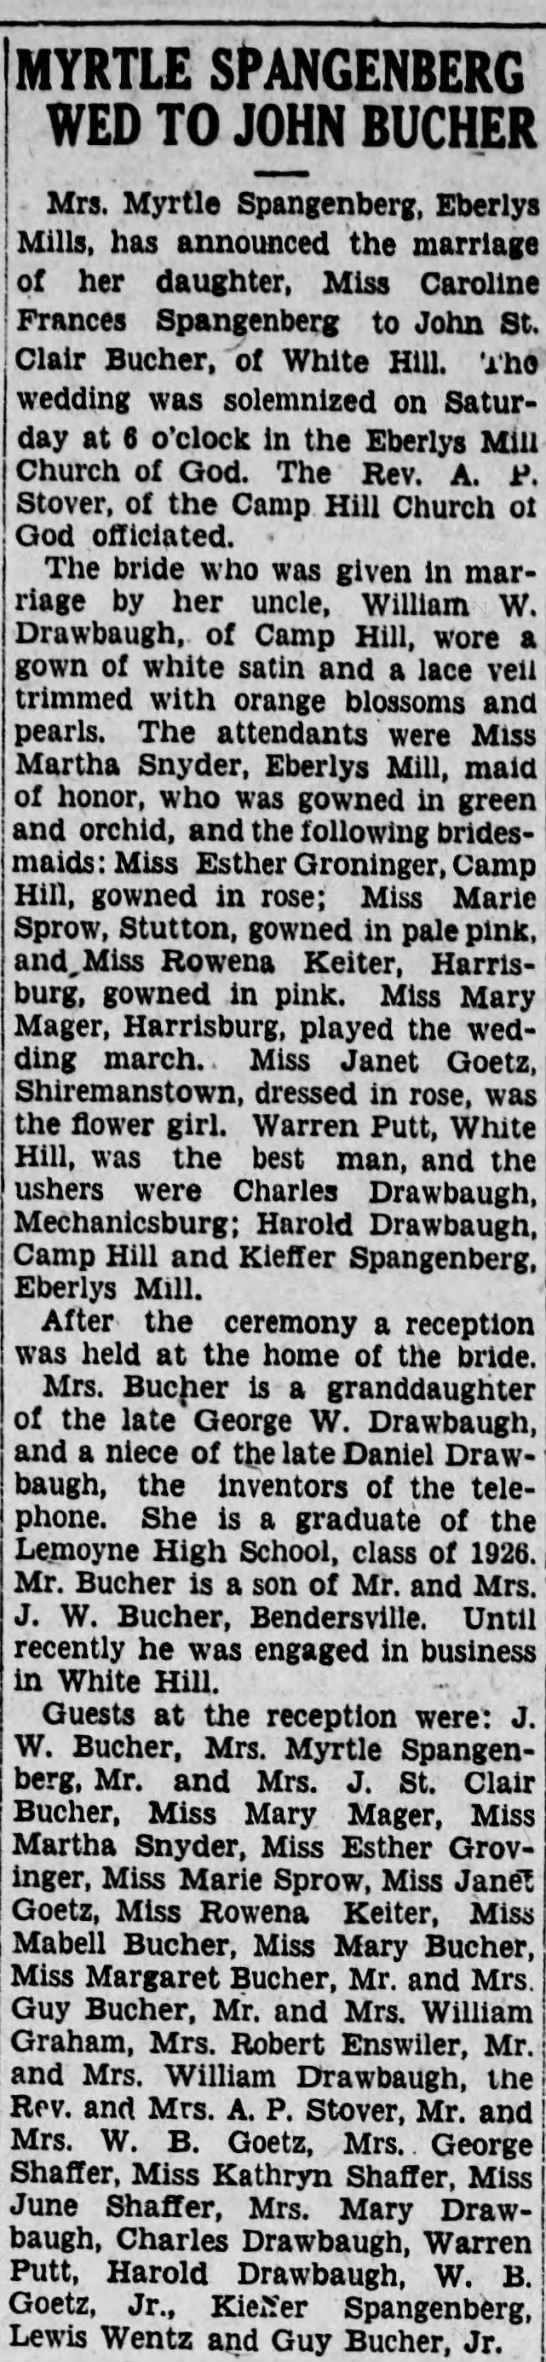 CarolineWedding2/20/28 - MYRTLE SPANGENBERG WED TO JOHN BUCHER Mrs....